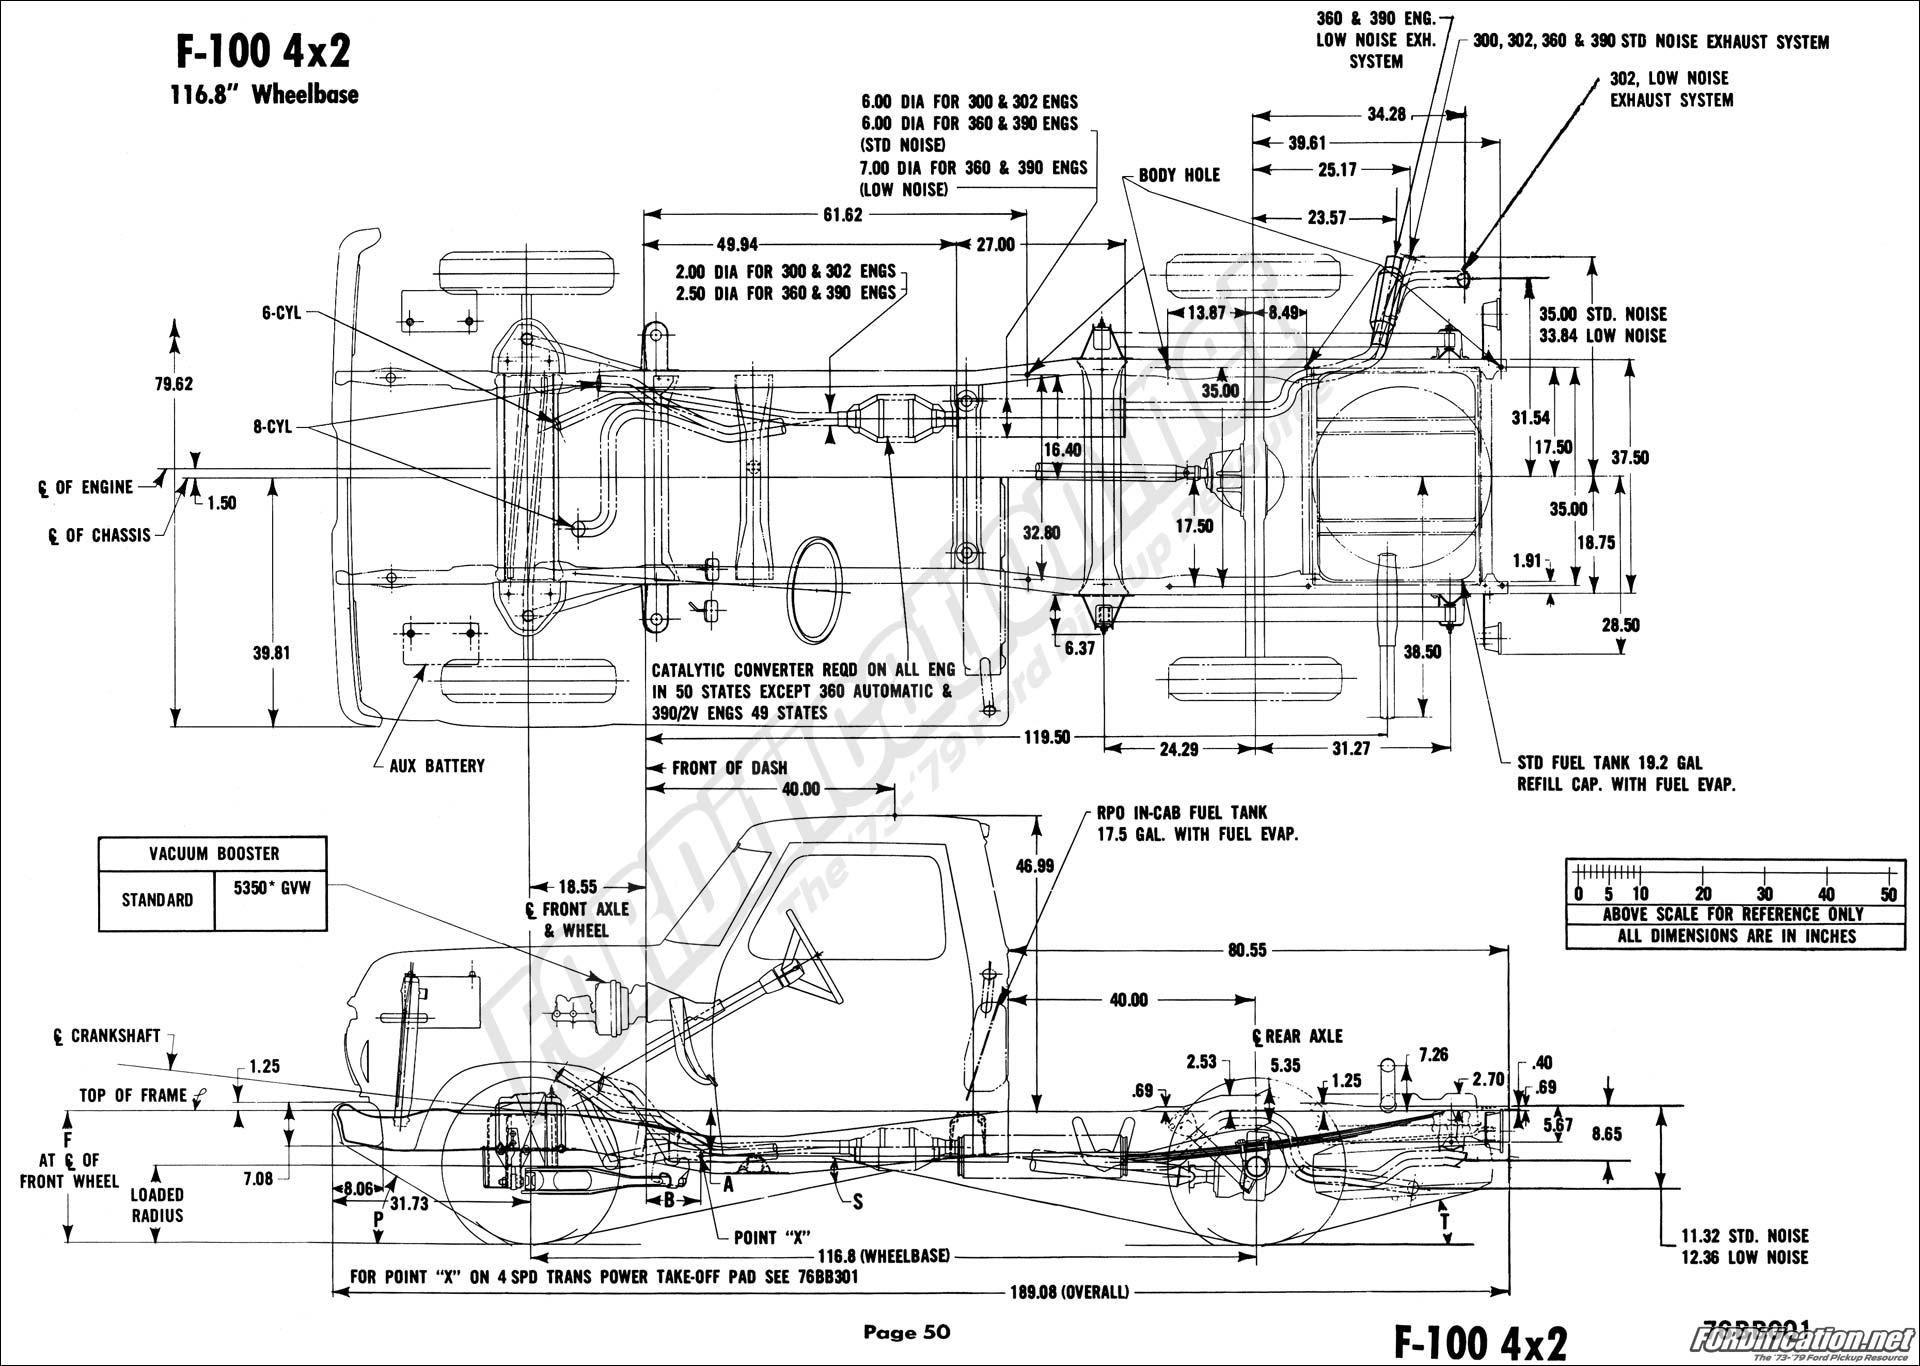 76 f100 engine diagram